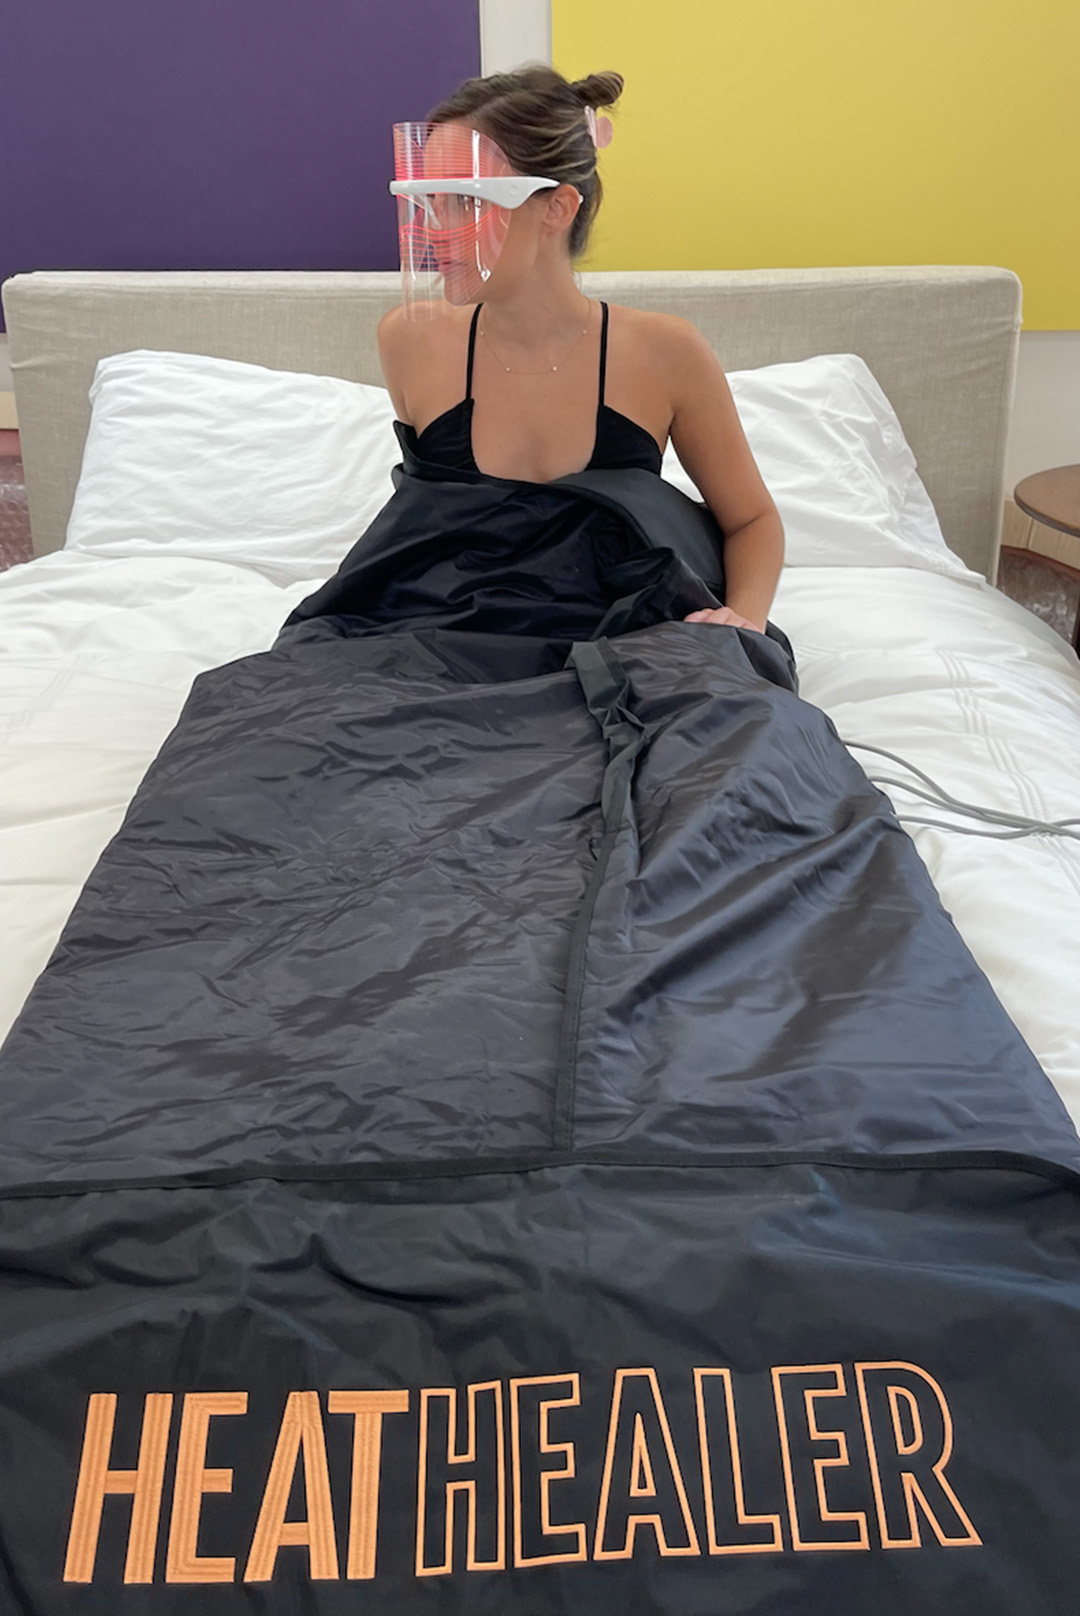 woman using Infrared Sauna Blanket in bed and wearing LED light shield mask